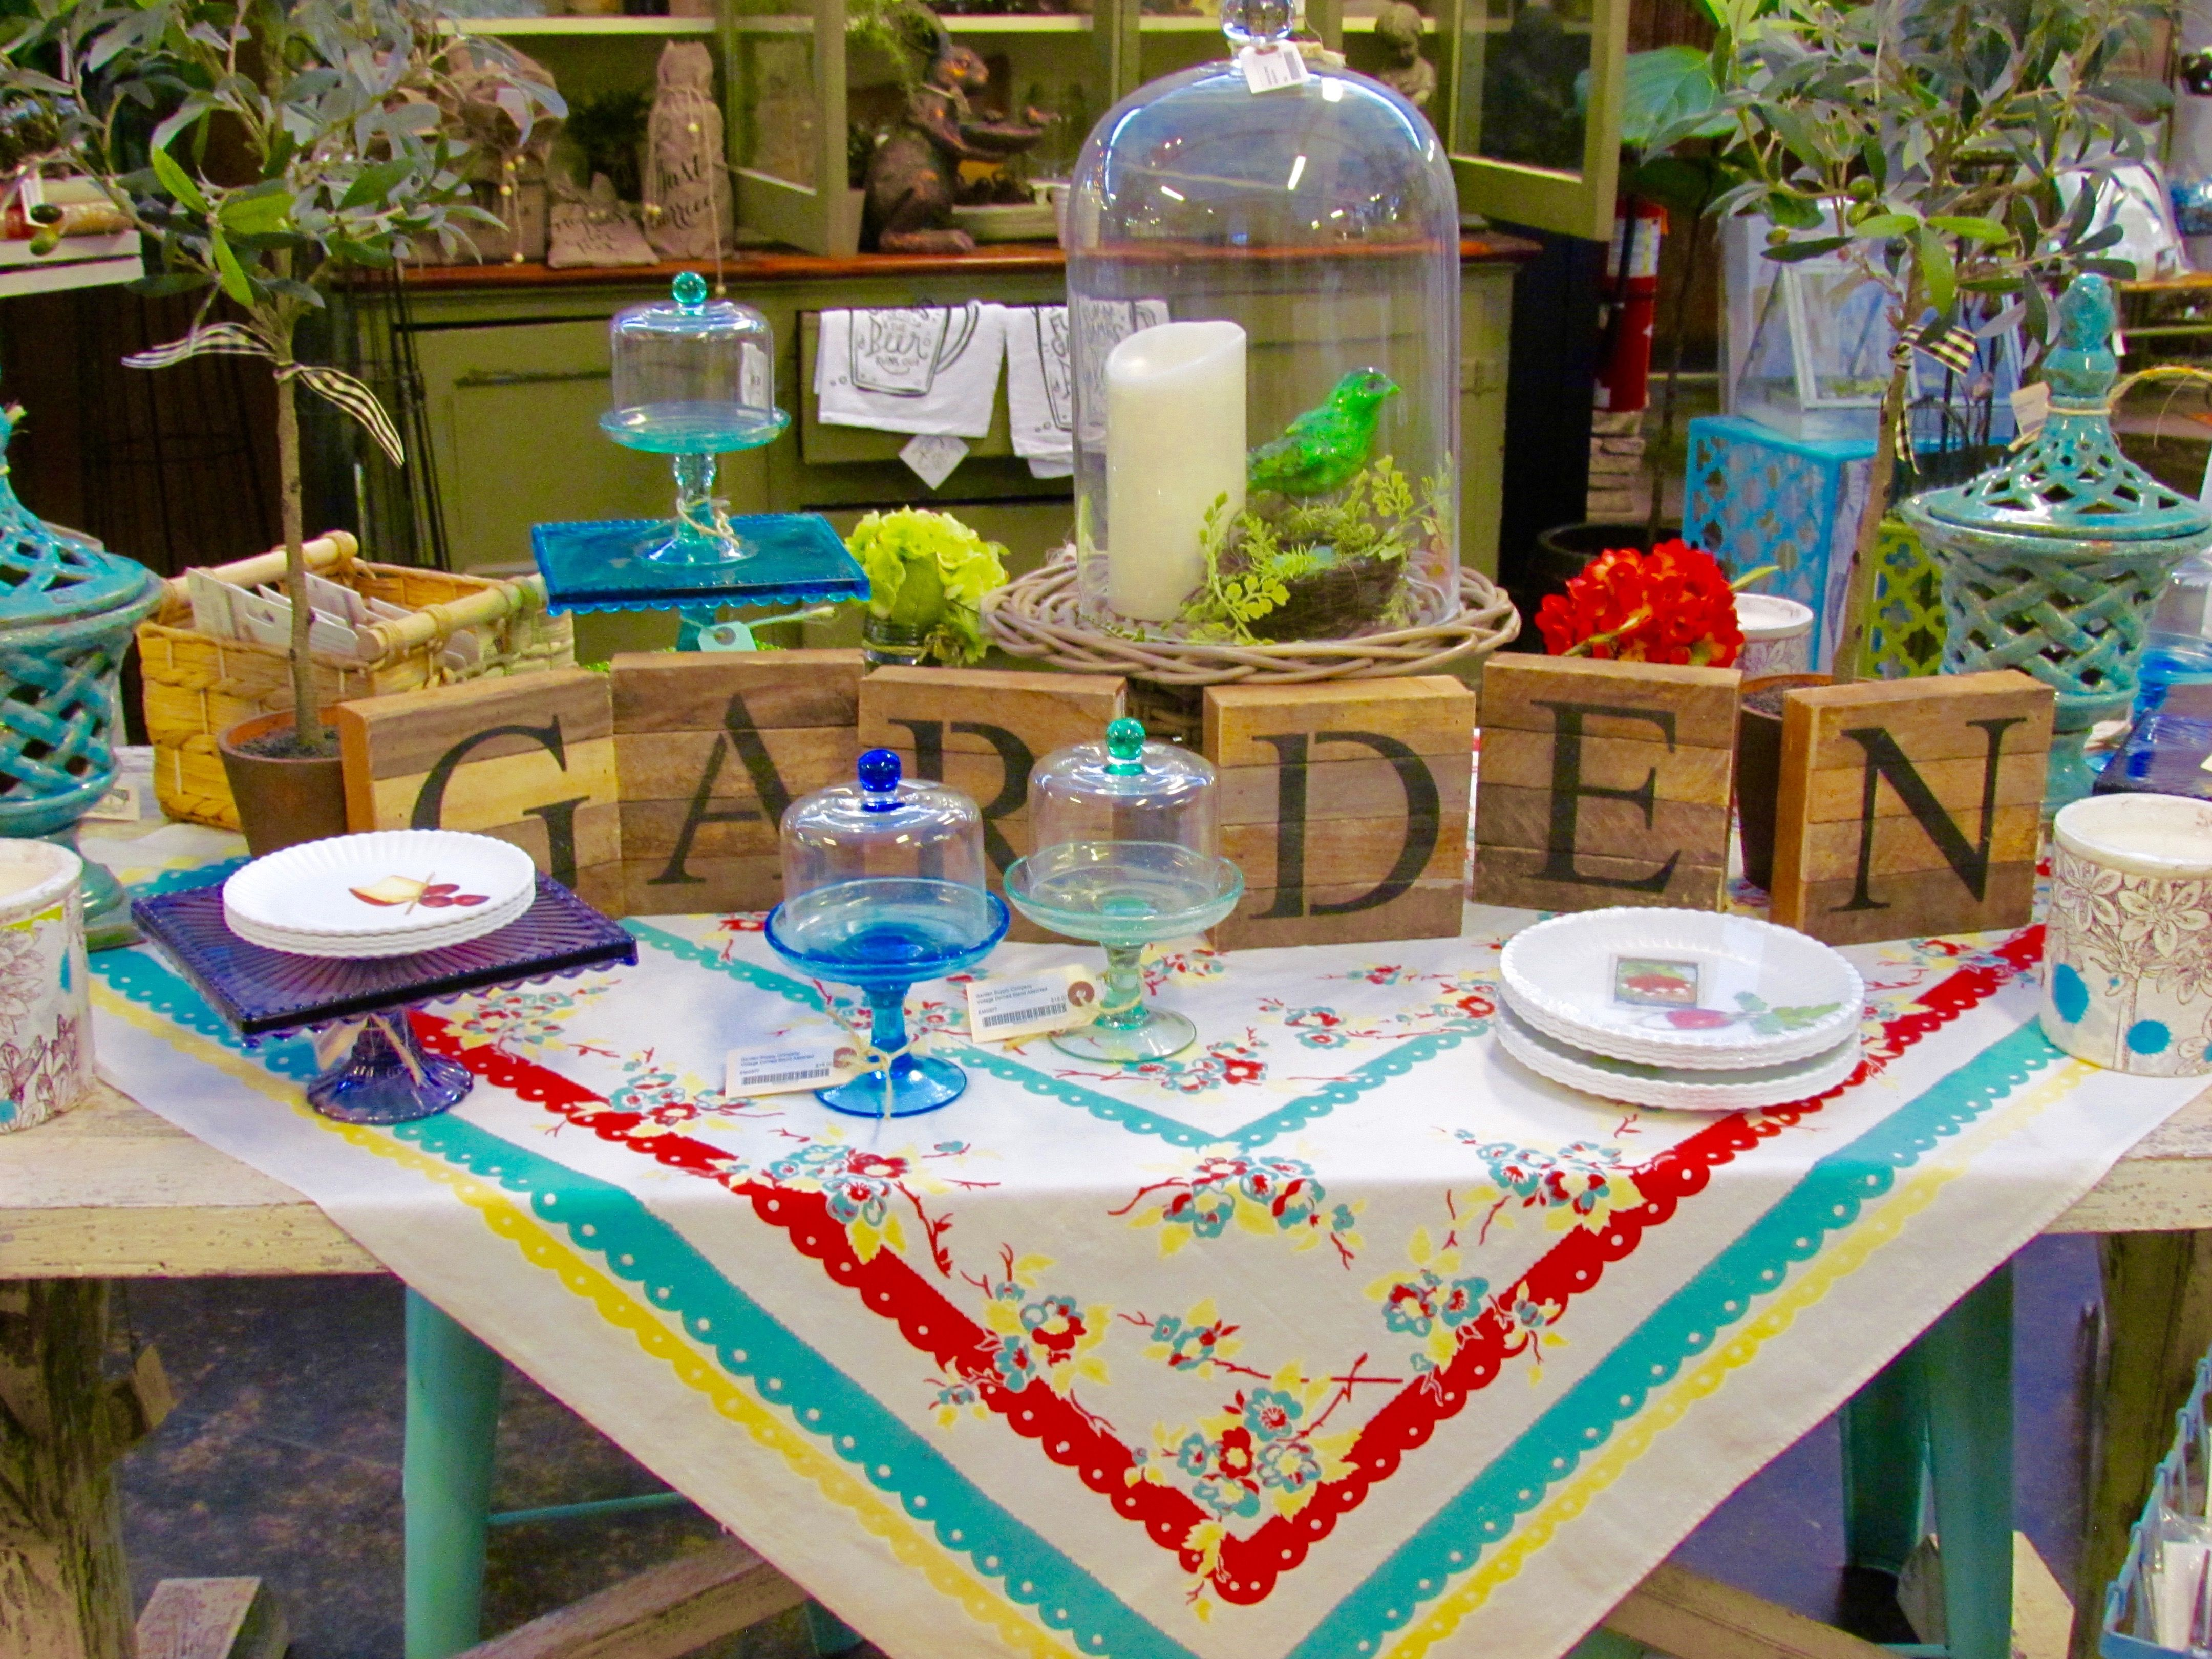 Fun Spring Table Cloth And Outdoor Eating Decor